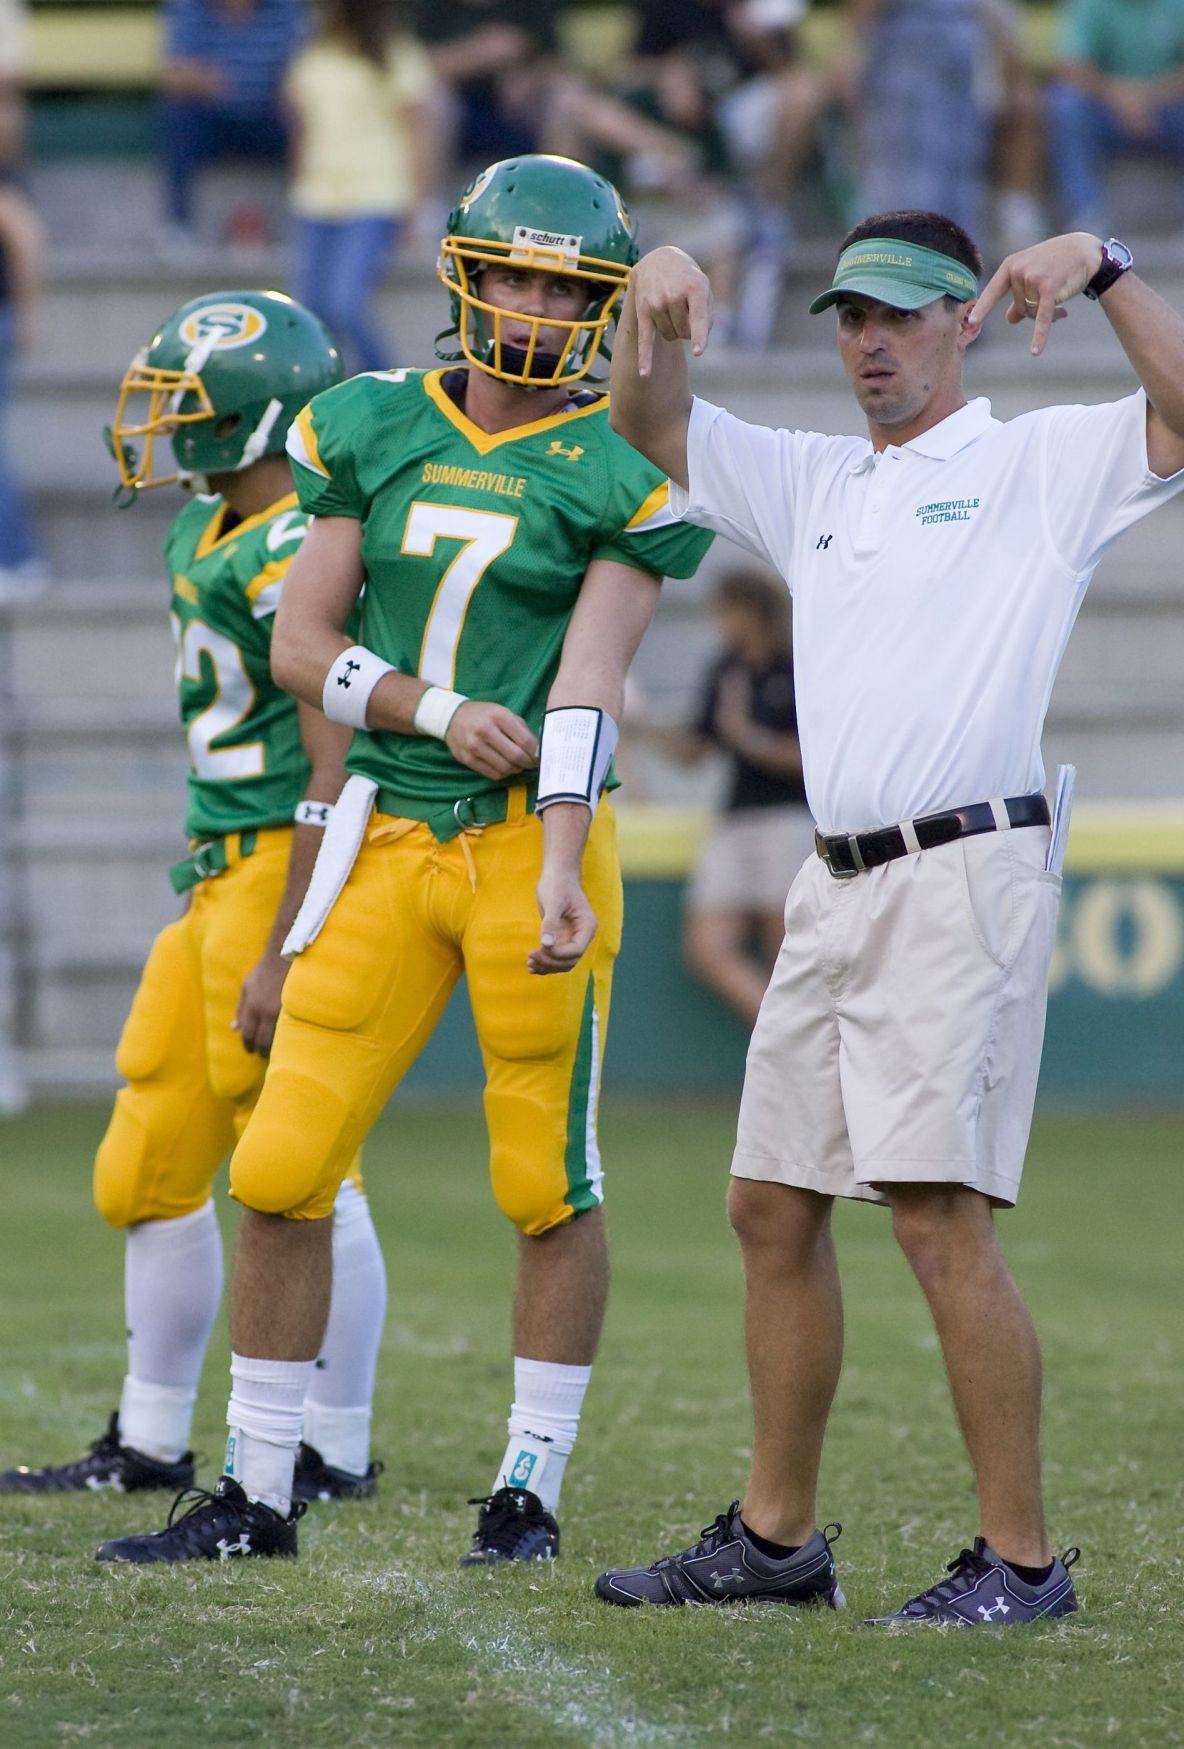 Summerville looks to fill void 'quickly'